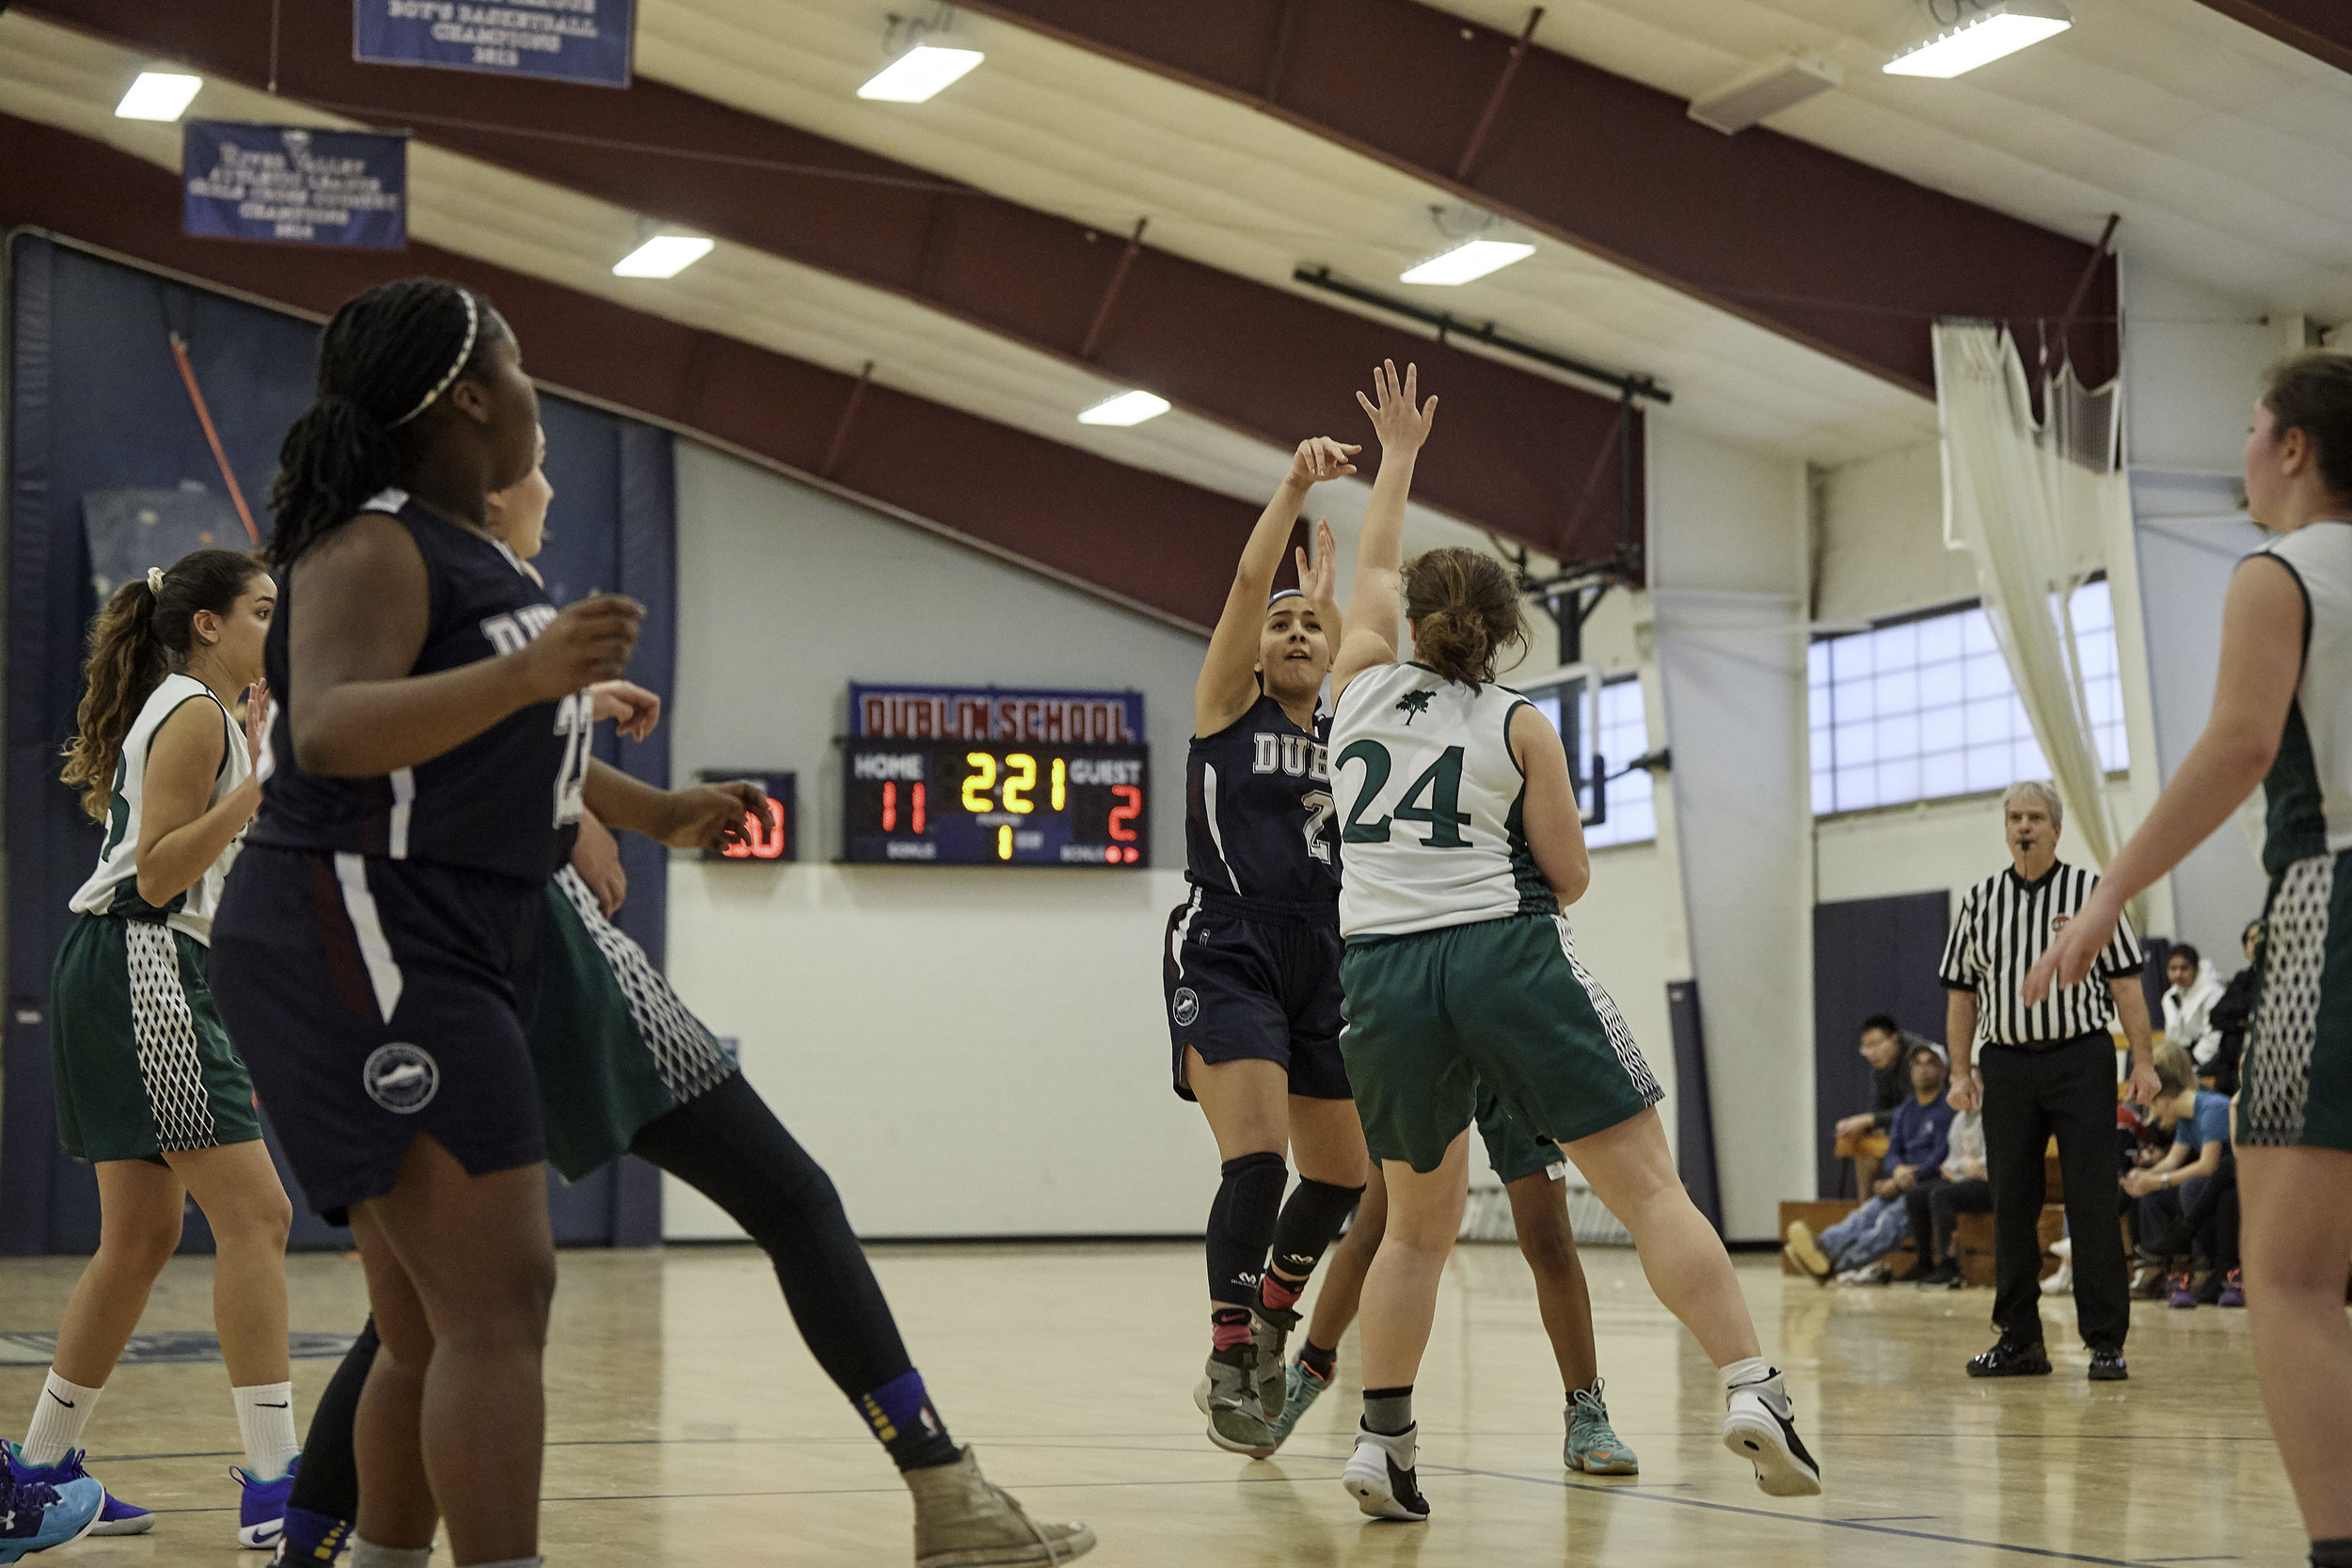 Basketball vs Putney School, February 9, 2019 - 167292.jpg